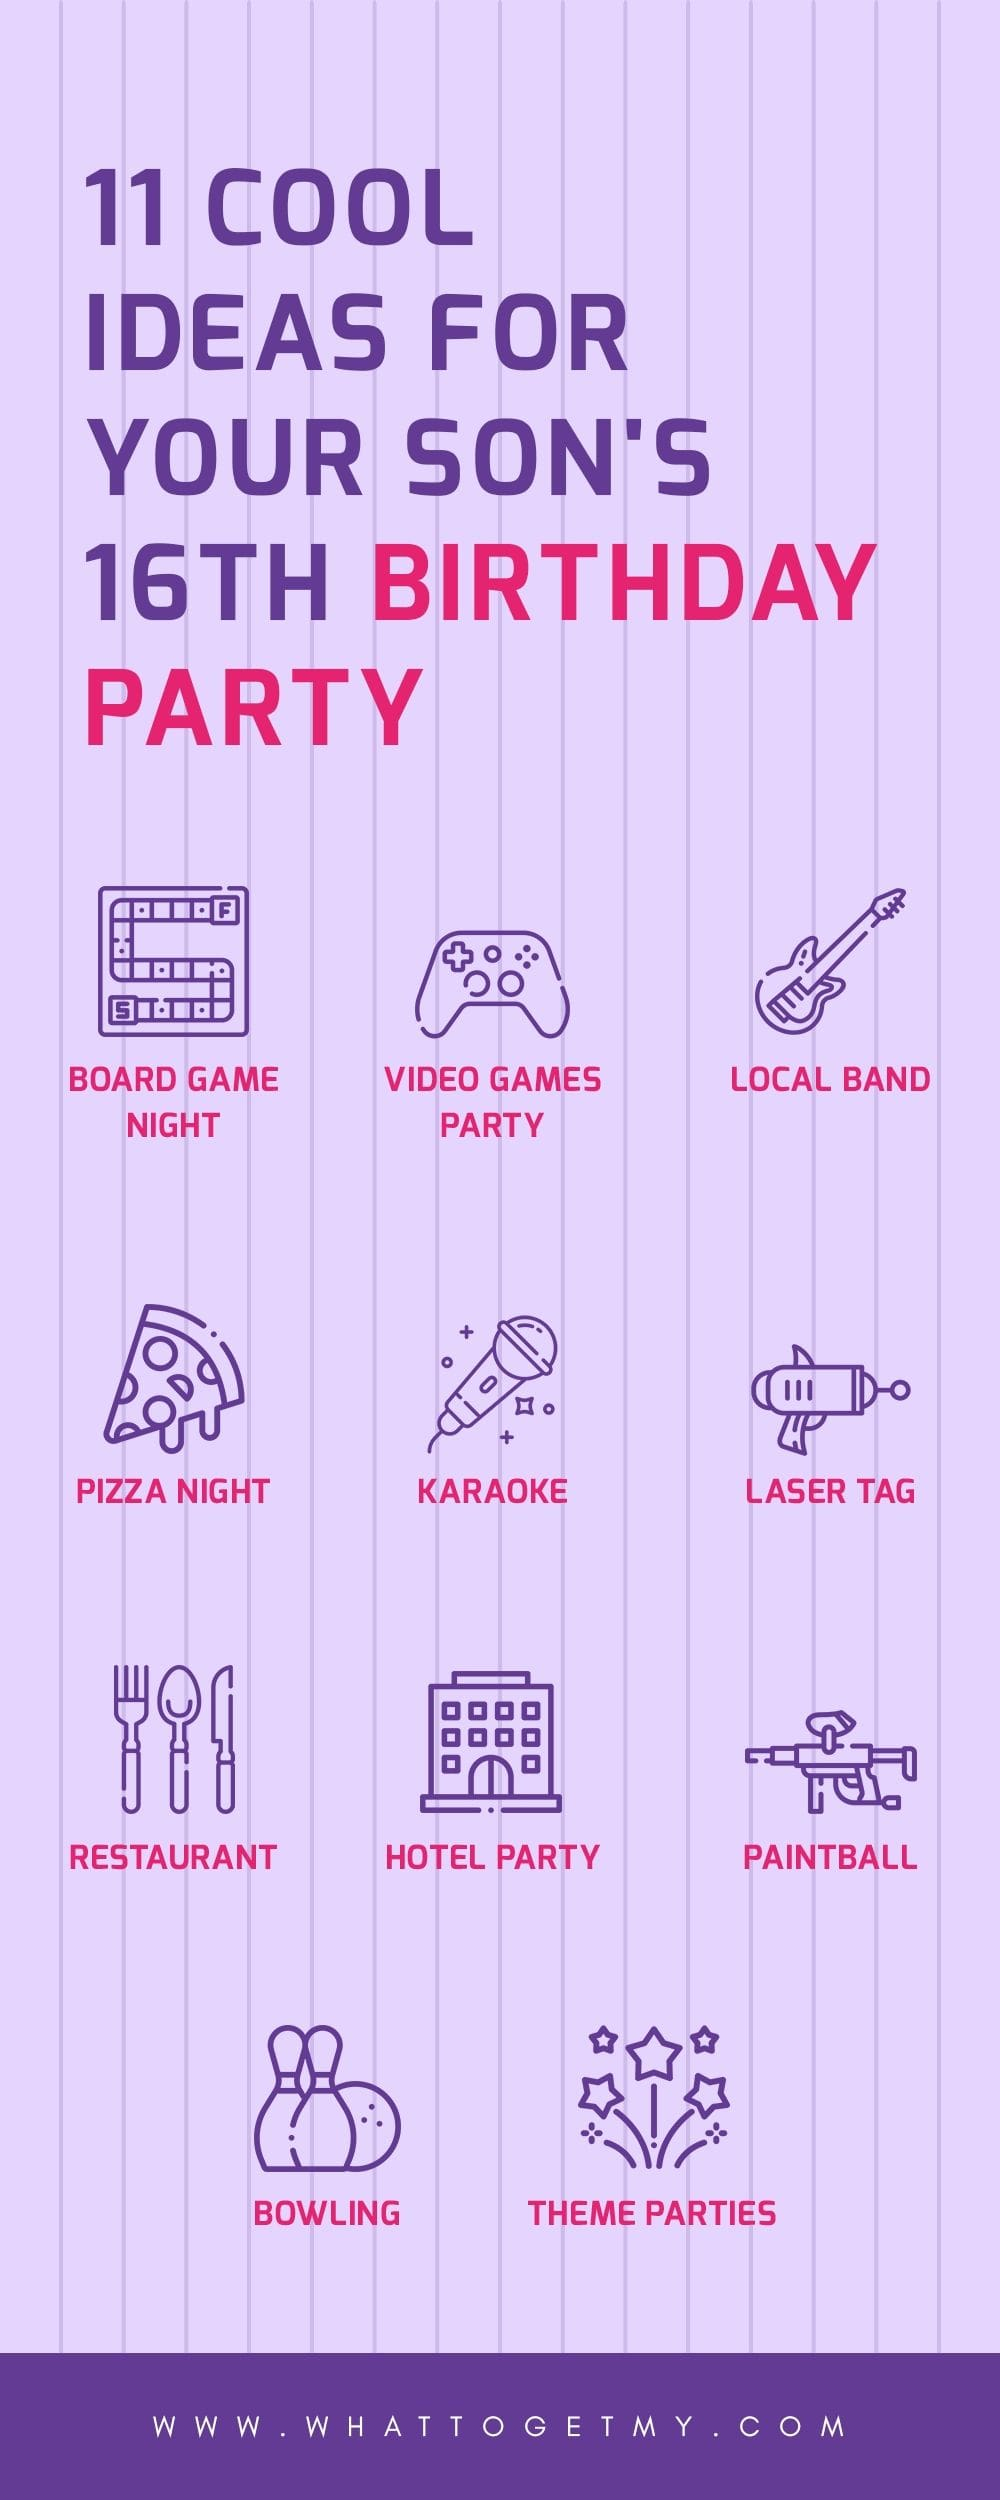 Infographic 11 Cool Ideas For Your Son's 16th Birthday Party